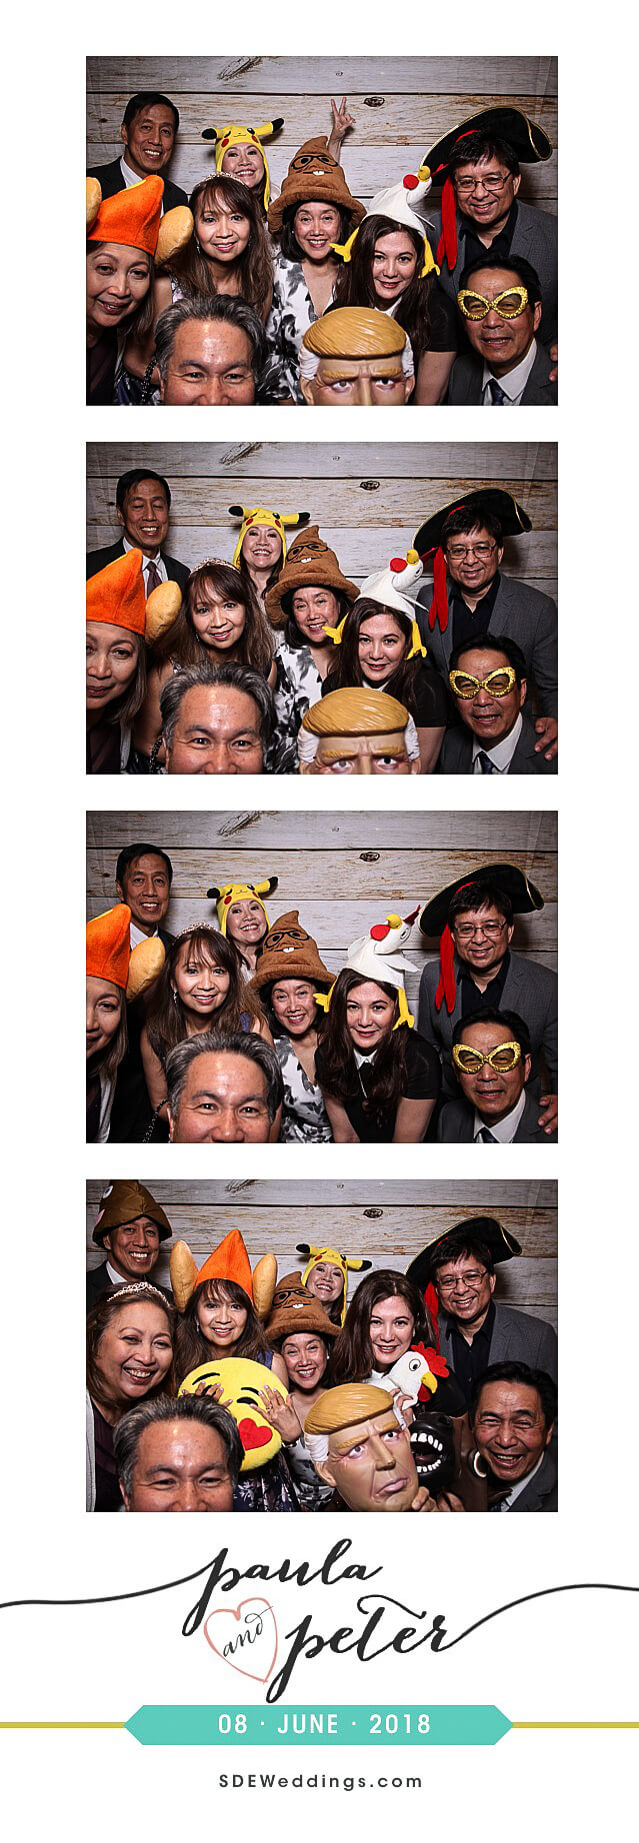 Peter & Paula's Korean Wedding Photo Booth Photos at Oakview Terrace